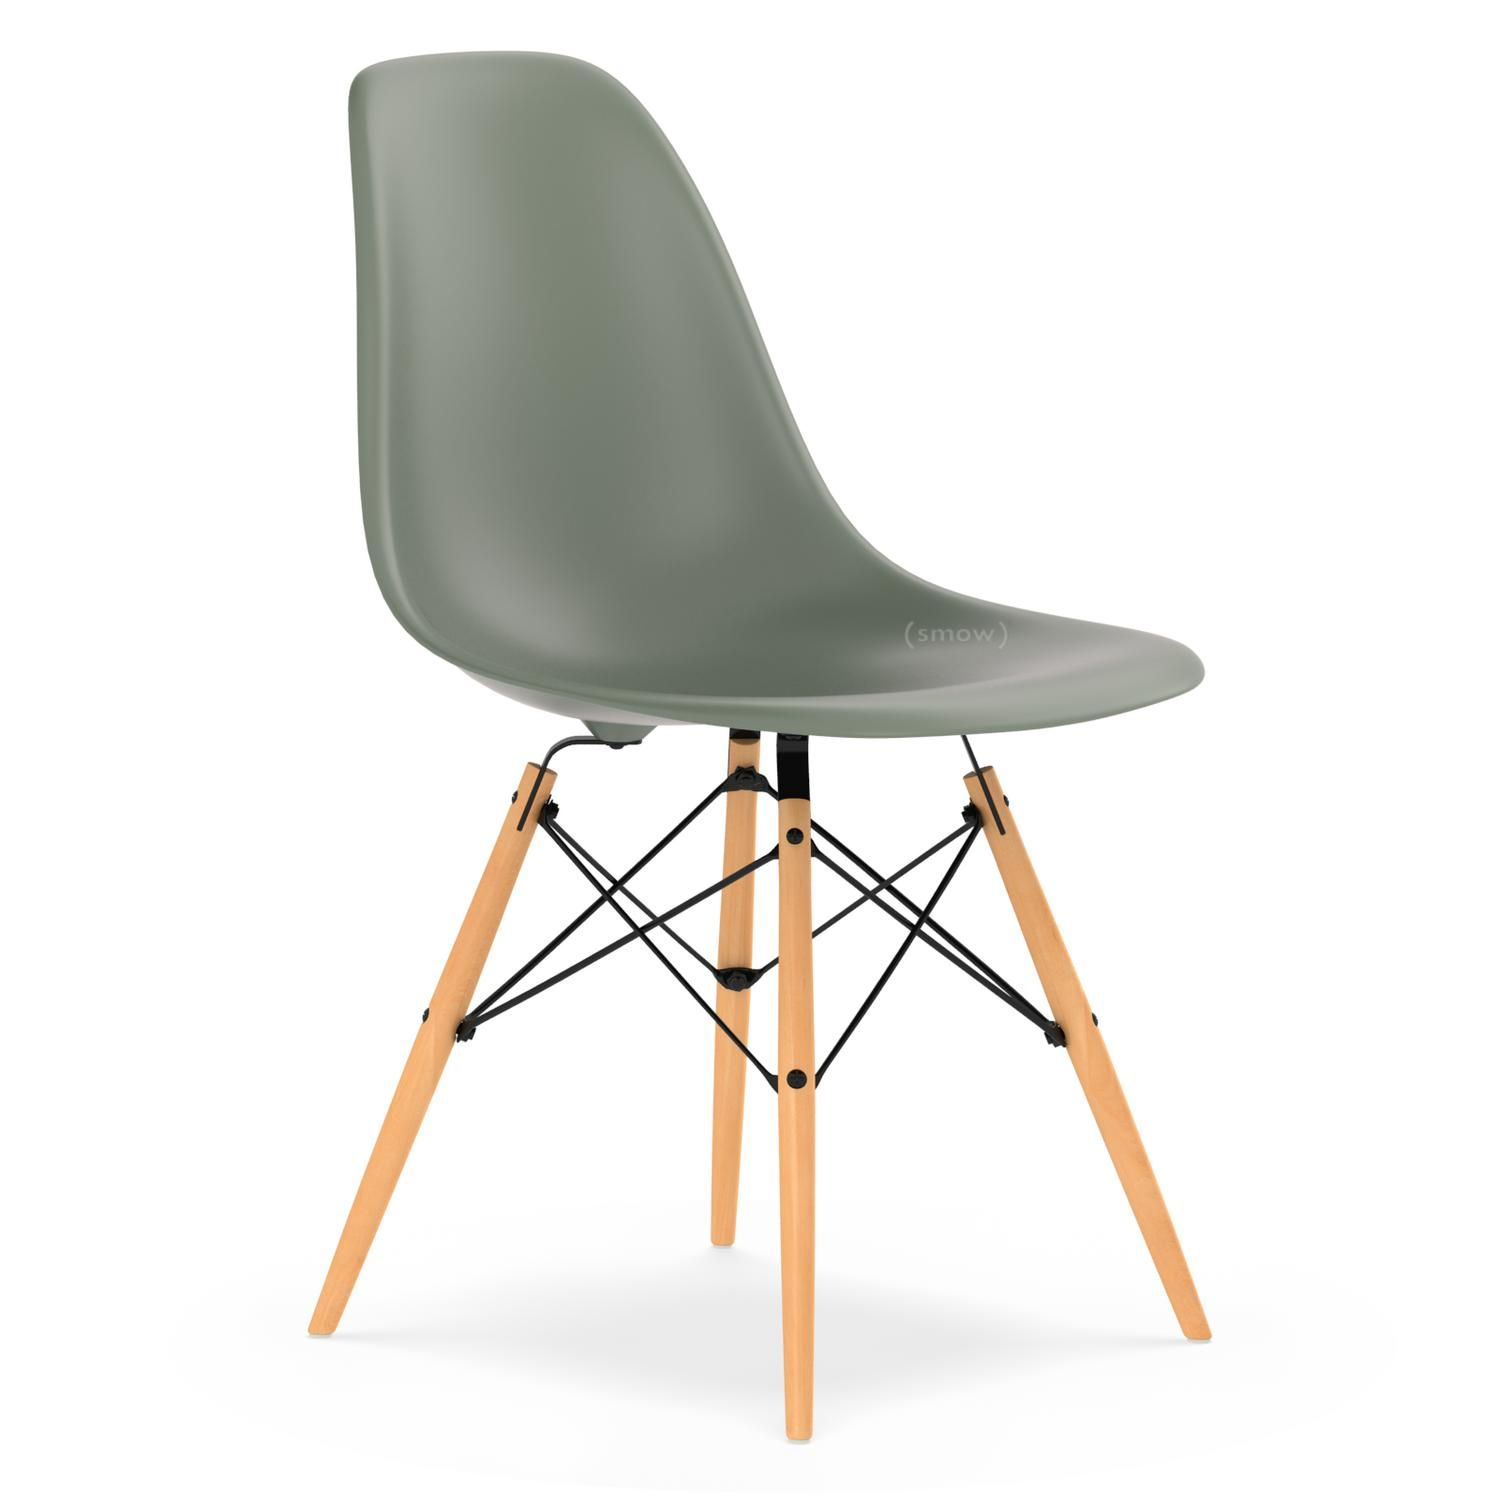 Vitra Eames Plastic Side Chair Dsw Moss Grey New Without Upholstery Without Upholstery S Restoration Hardware Dining Chairs Chair Oversized Chair And Ottoman